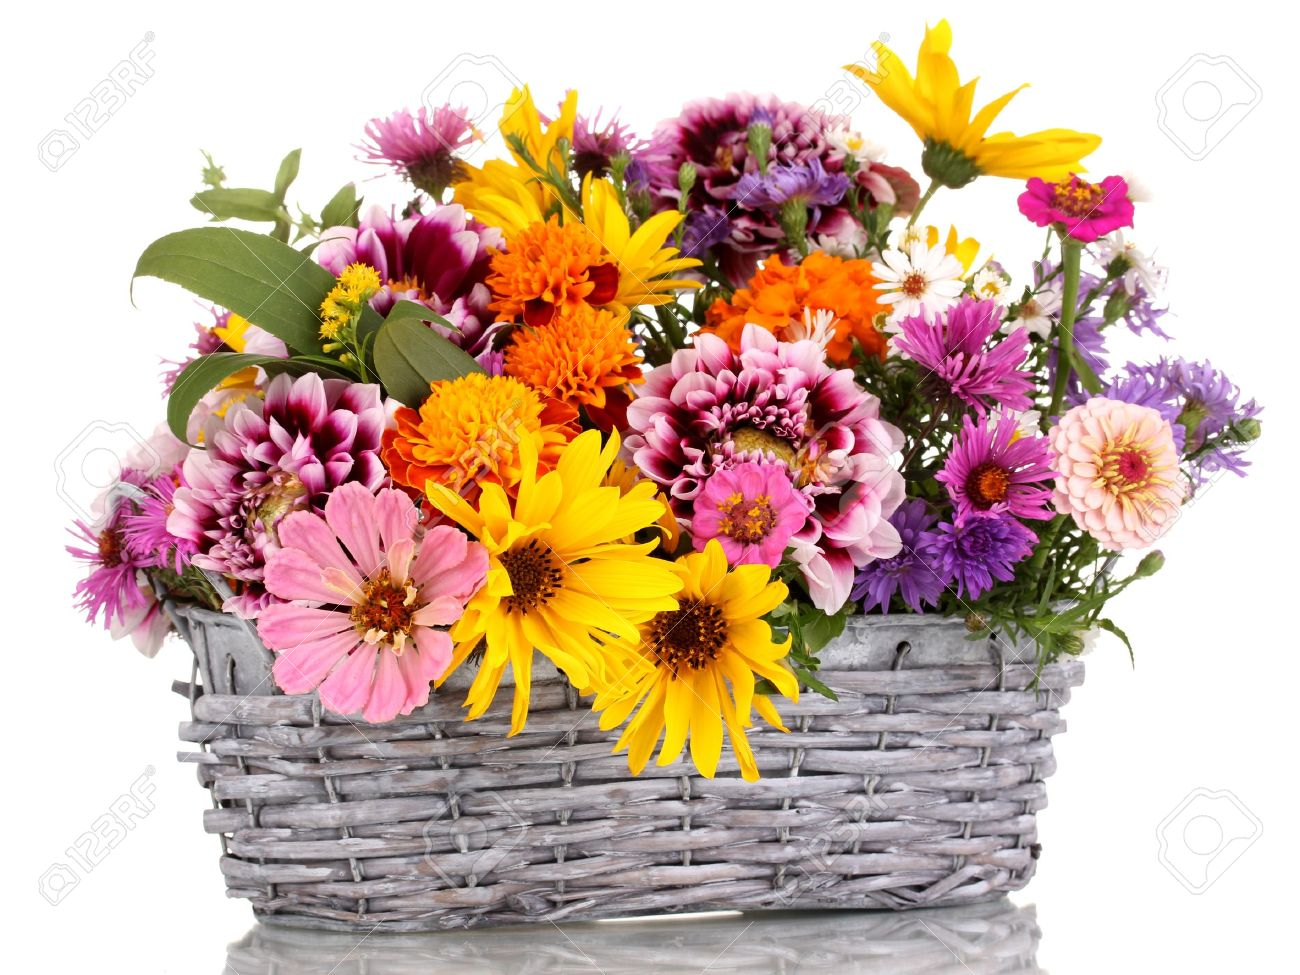 Beautiful Bouquet Of Bright Flowers In Basket Isolated On White Stock Photo